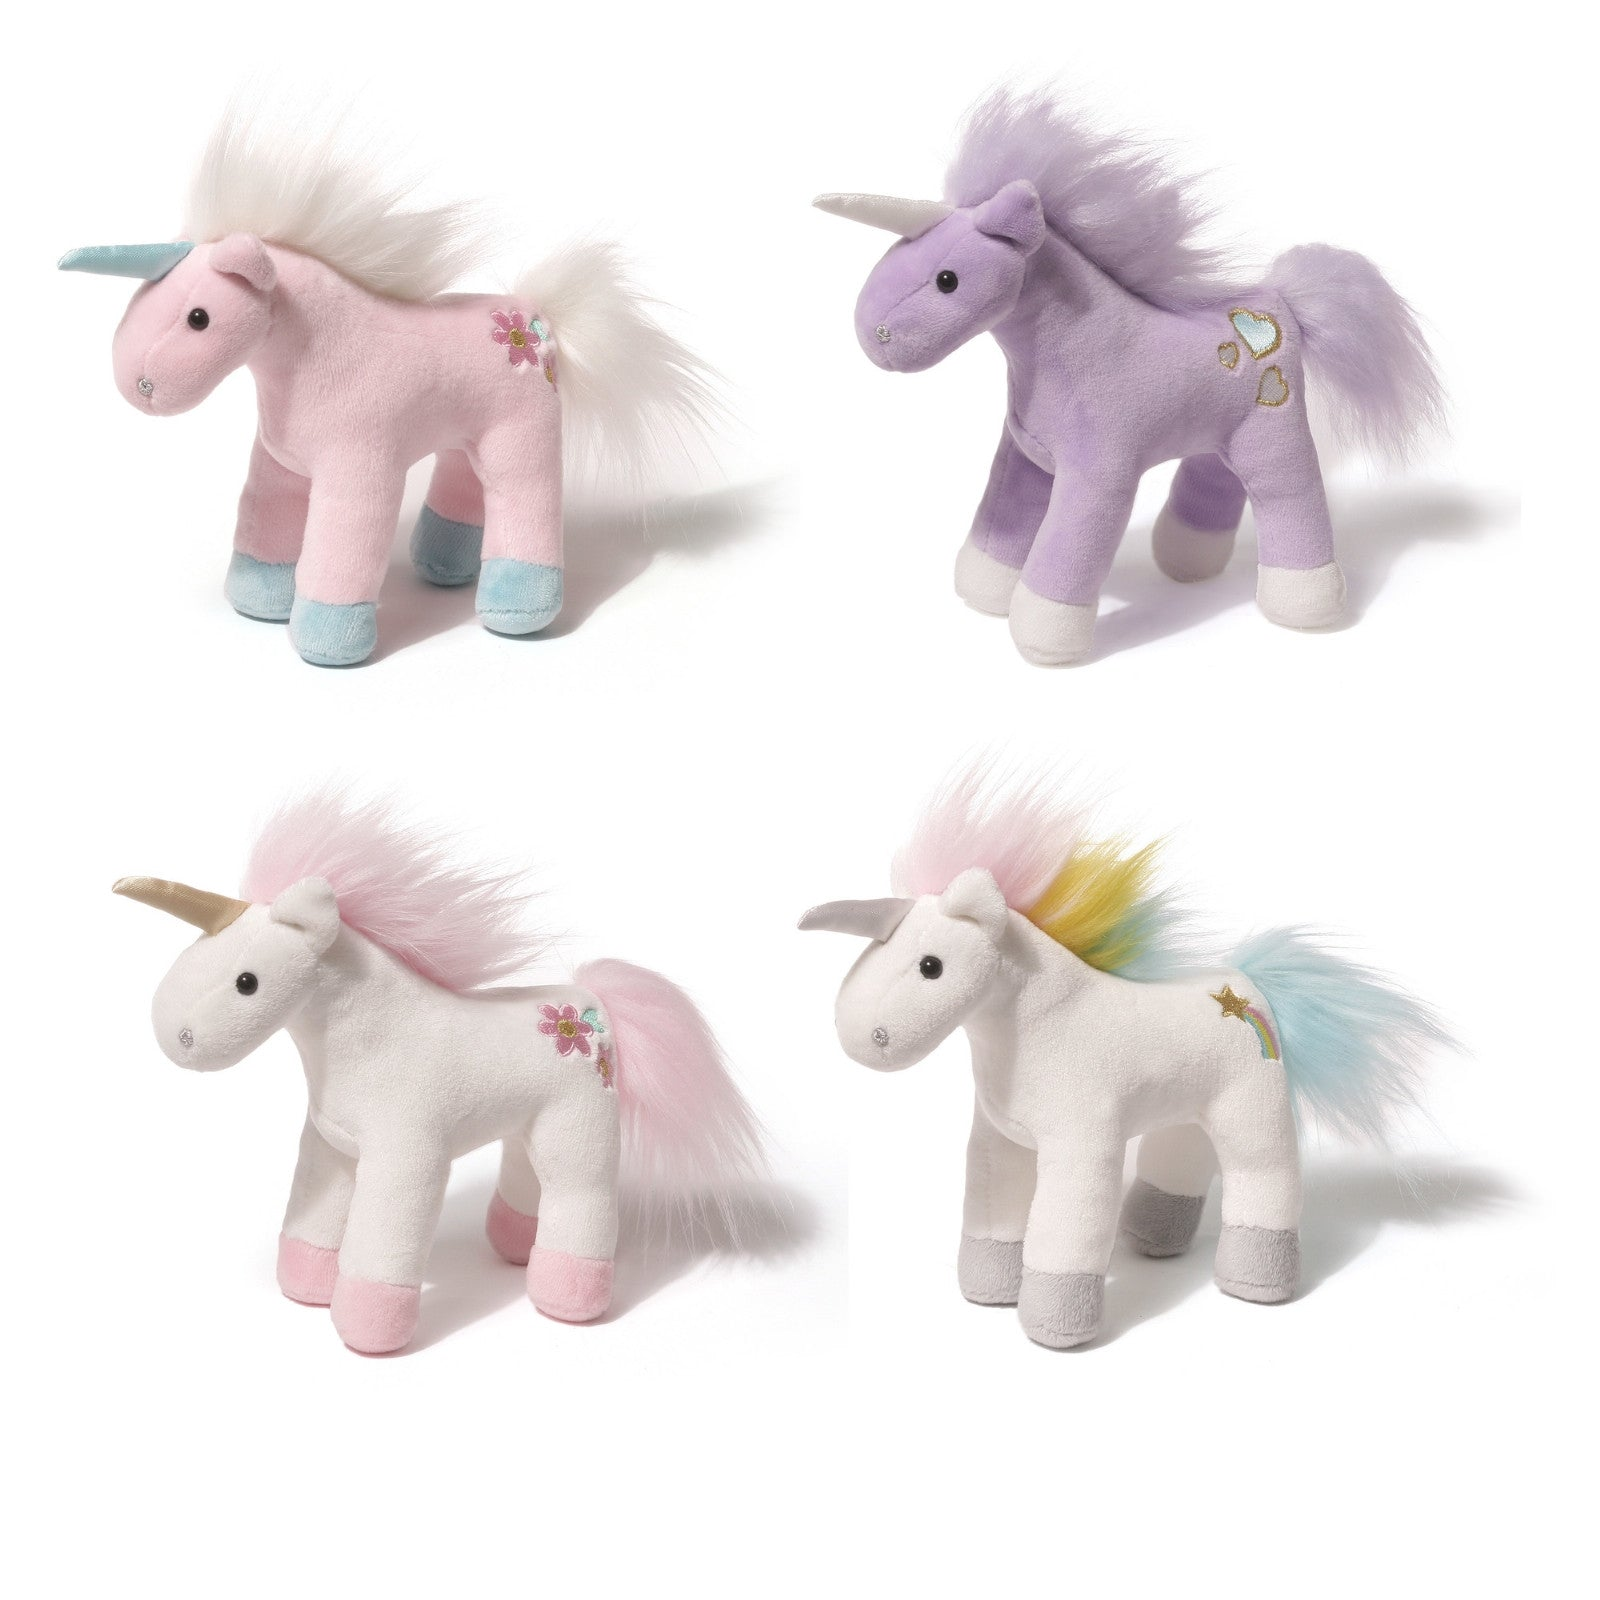 Gund - Unicorn Chatters - 6""